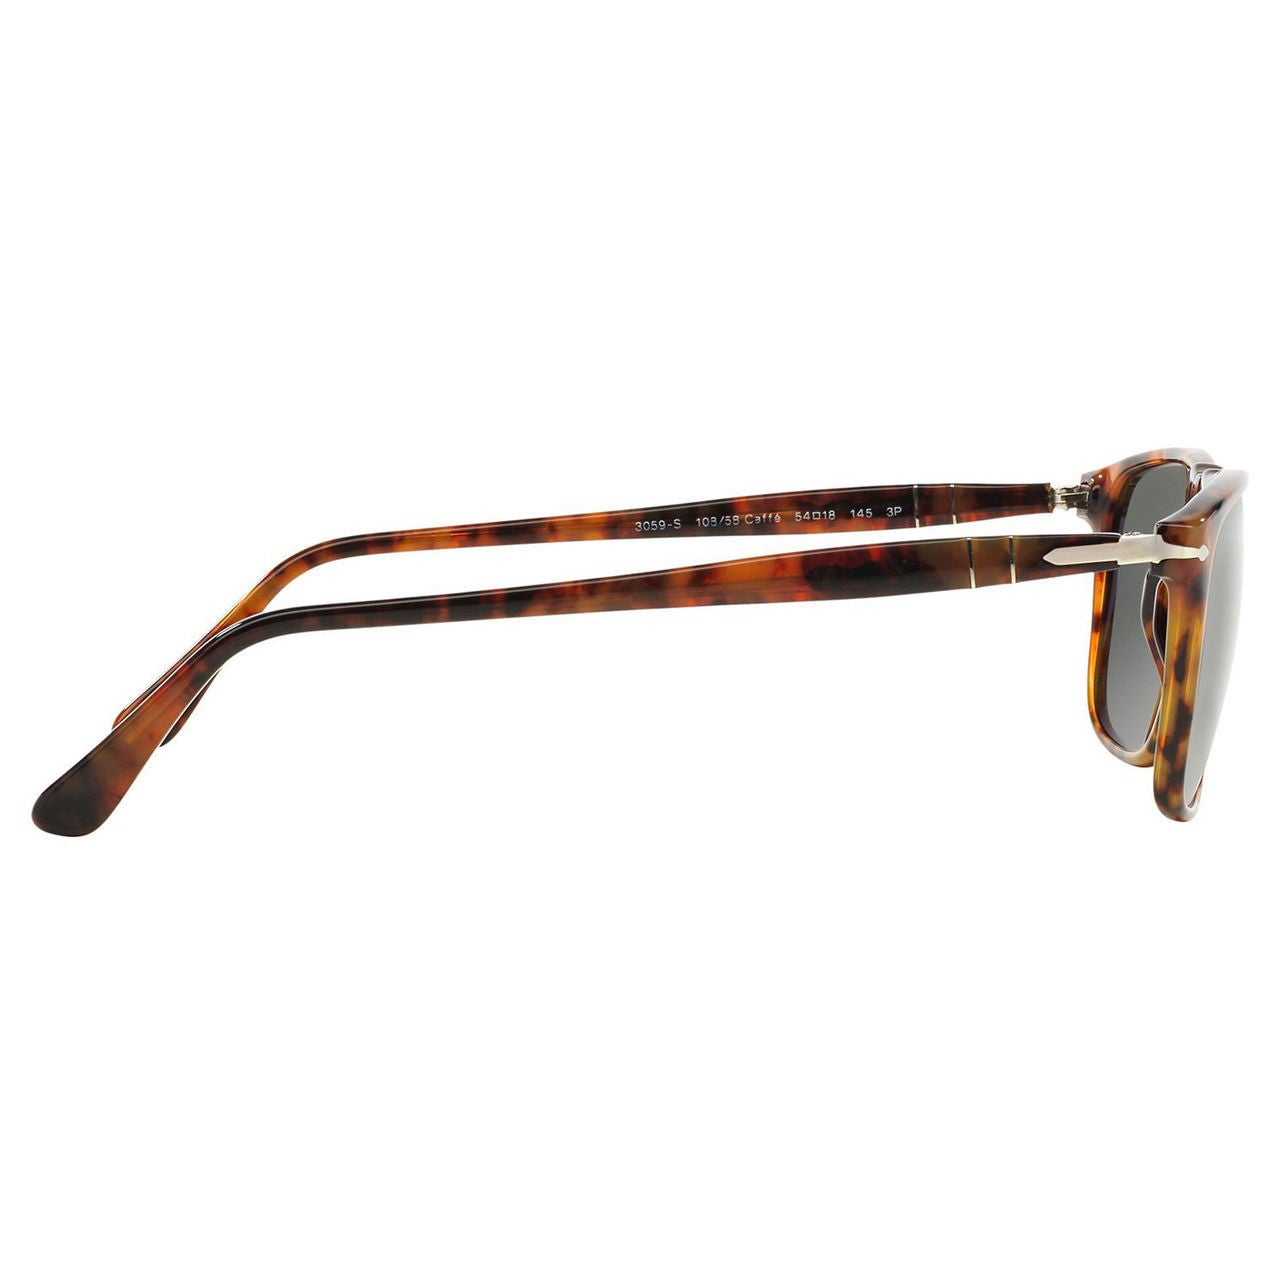 bbef6a75f7 Shop Persol Men s PO3059S Plastic Square Polarized Sunglasses - Large -  Free Shipping Today - Overstock - 10456416